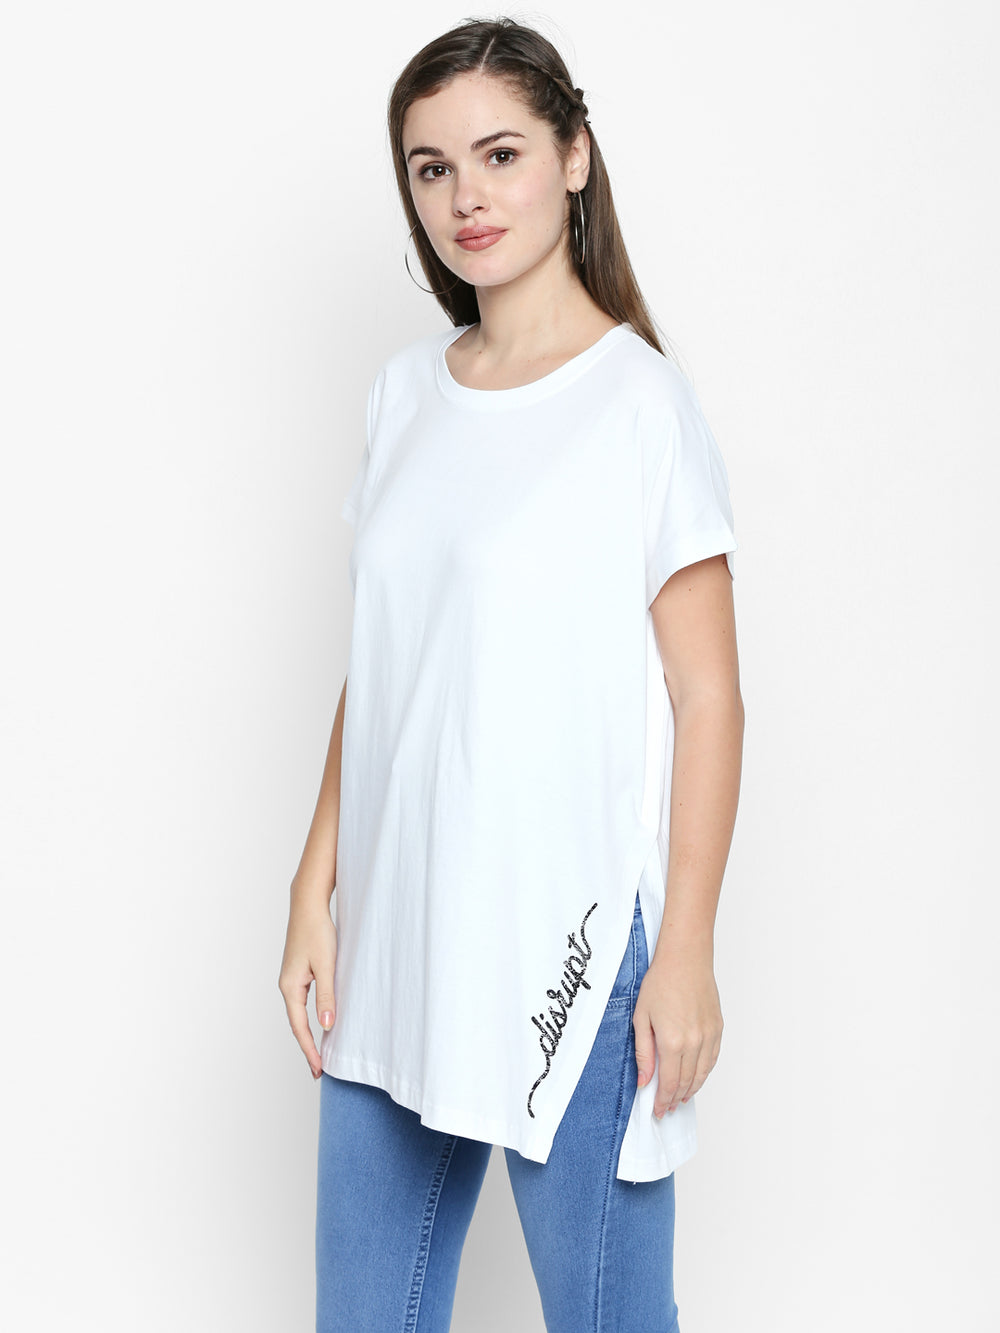 White Disrupt Graphic Print Split Side T-Shirt For Women's